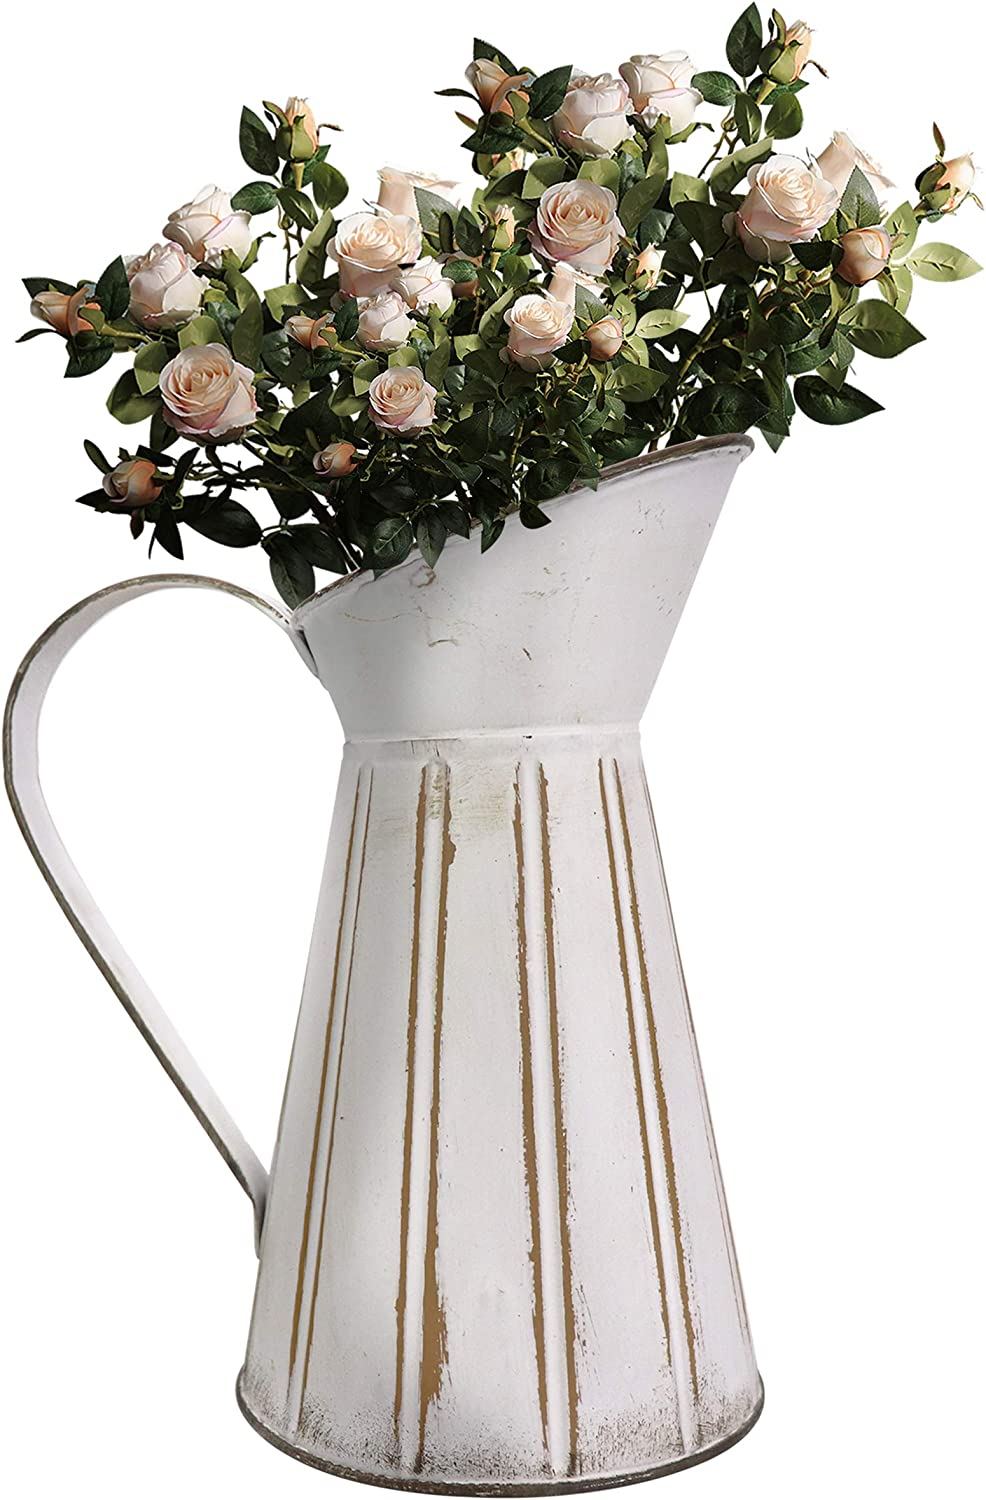 Soyizom Shabby chic Rustic Pitcher Vase French Metal Milk Jug Country Farmhouse Christmas Decorative Jug Pitcher Primitive Tin Watering Can Jug Vase Flower Holder for Living Room Kitchen Decor,Pitcher